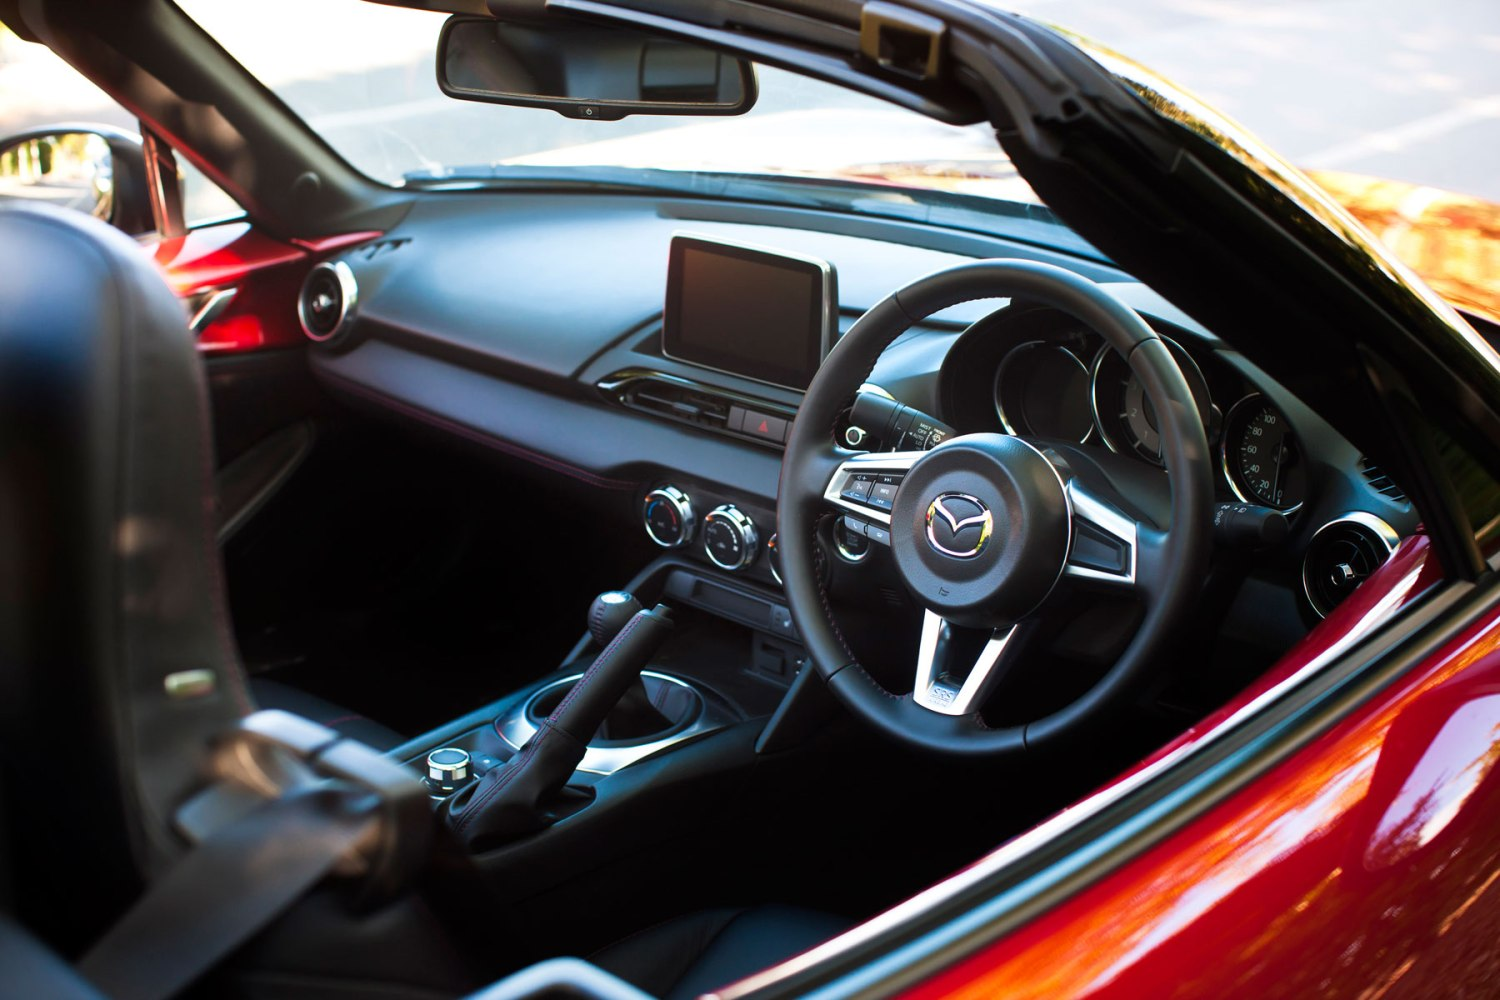 Mazda MX-5: on the inside